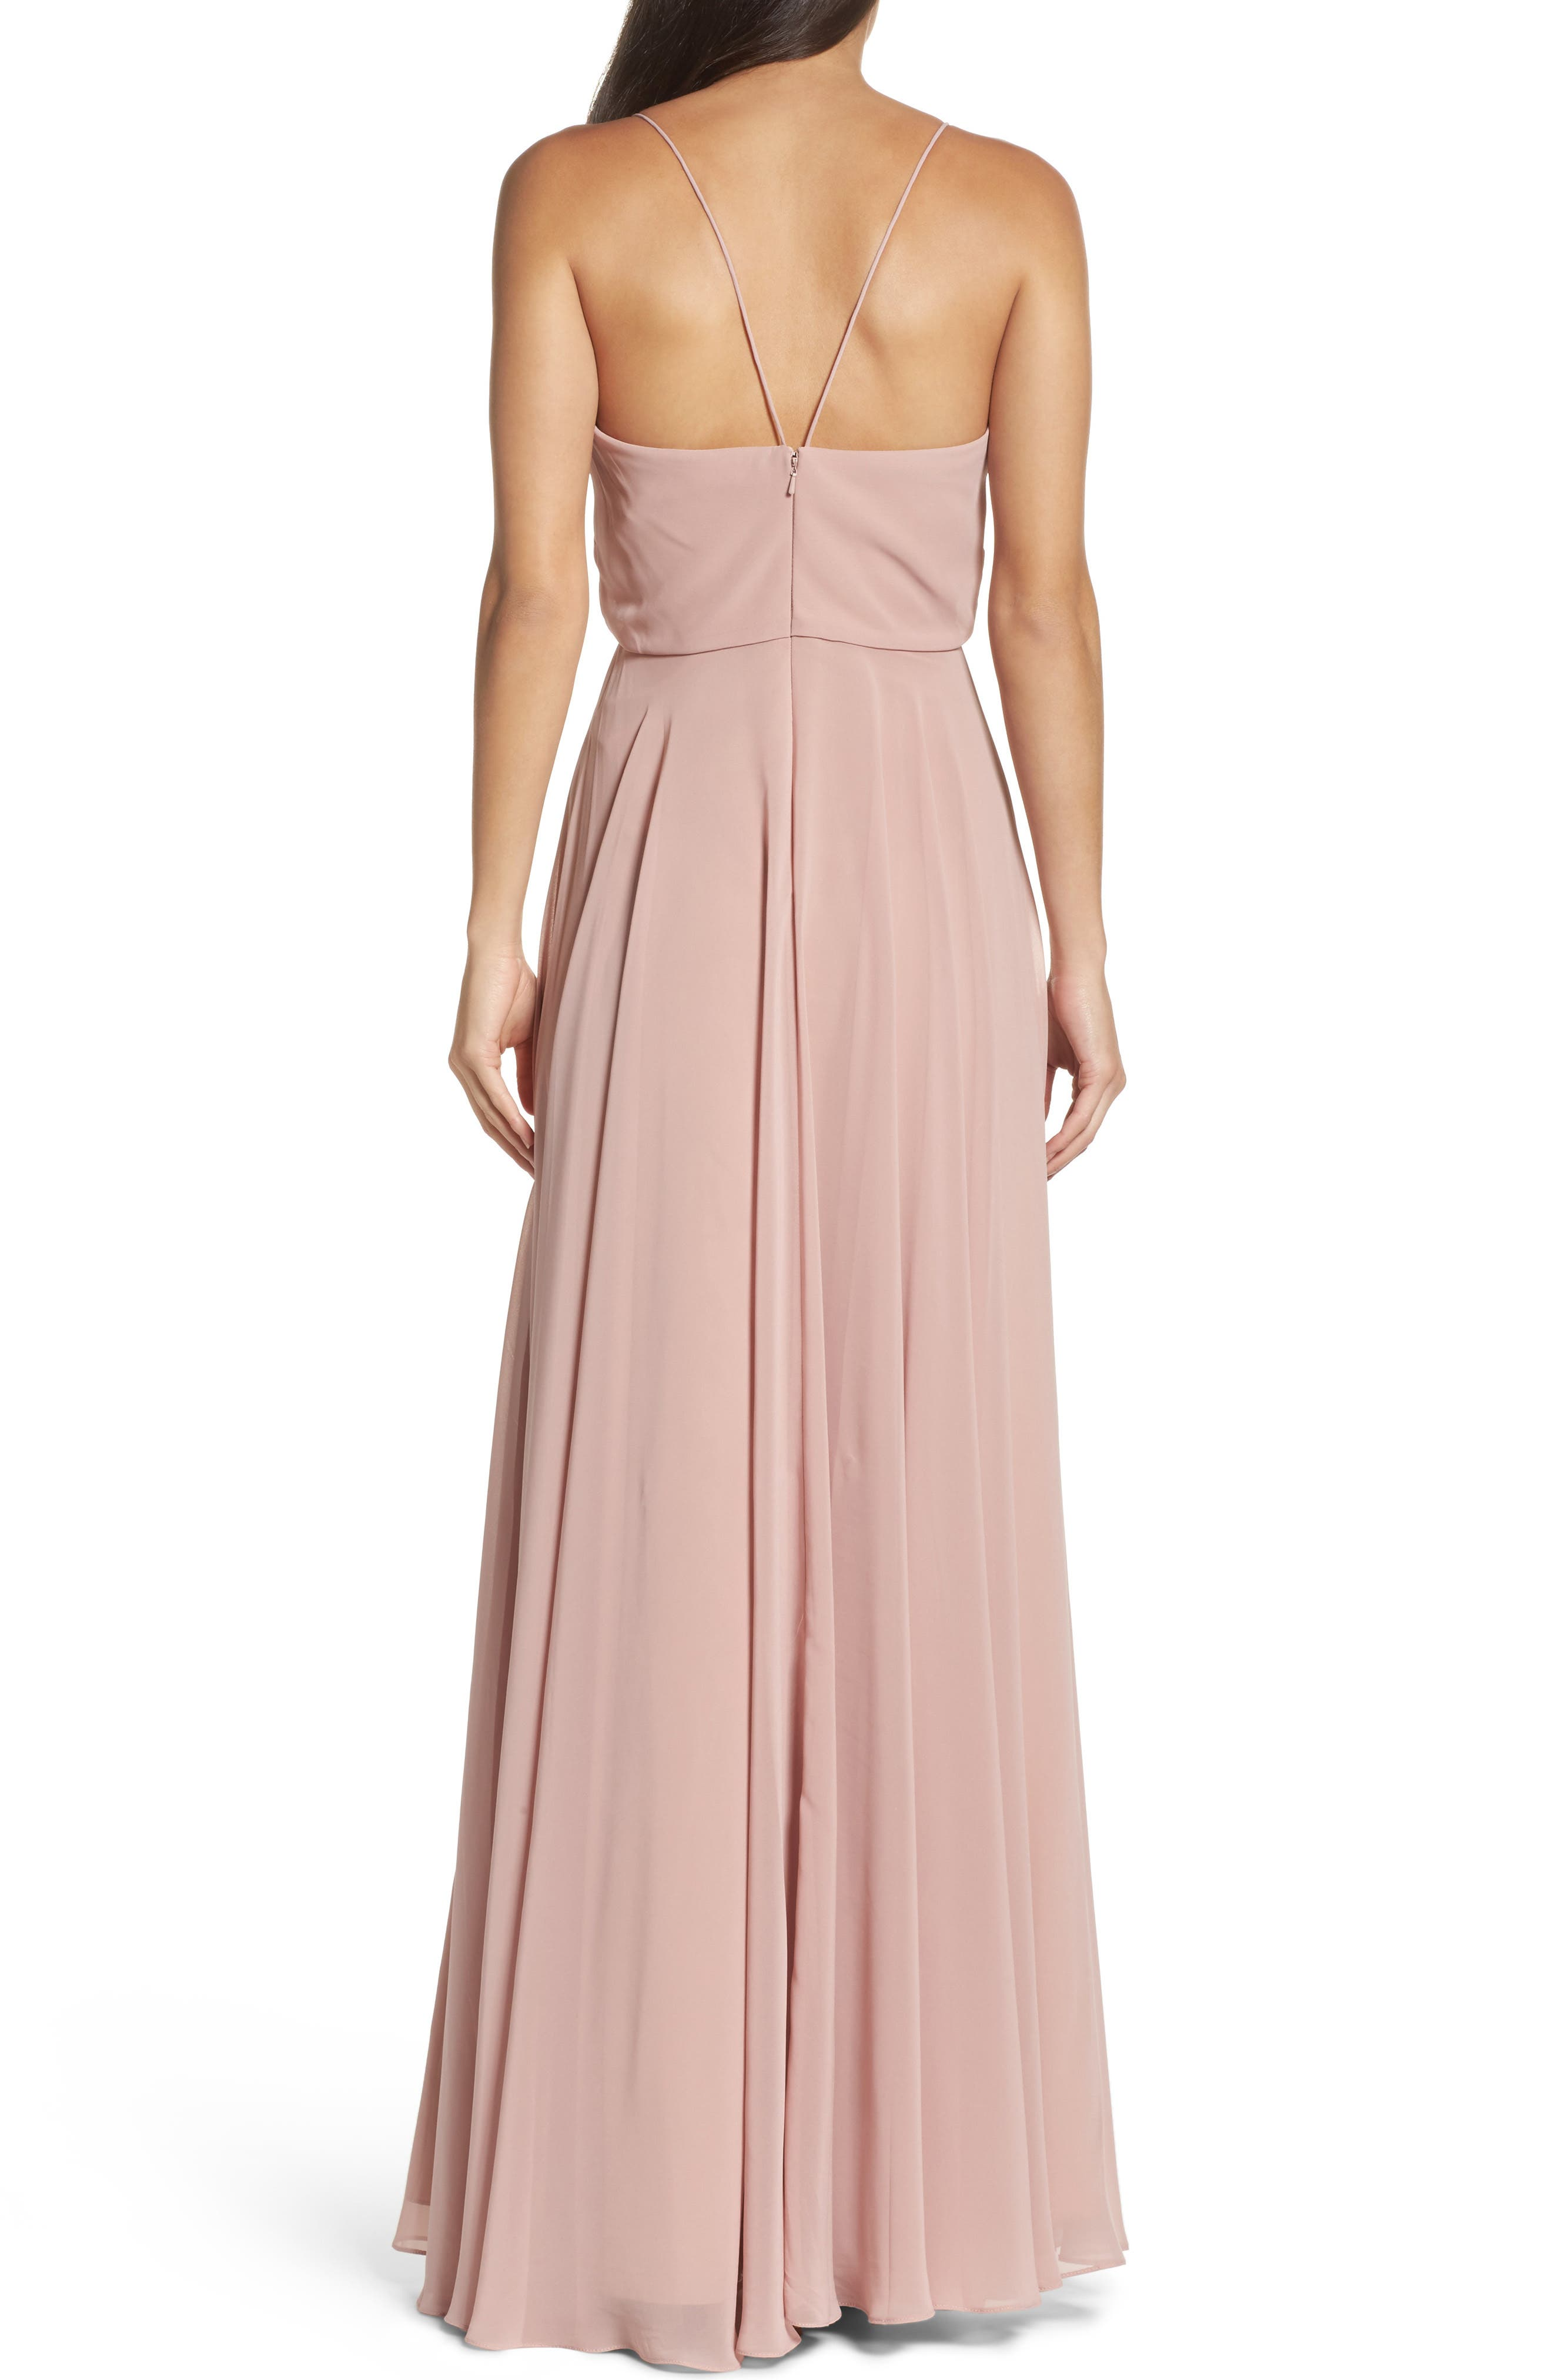 JENNY YOO, Inesse Chiffon V-Neck Spaghetti Strap Gown, Alternate thumbnail 2, color, WHIPPED APRICOT